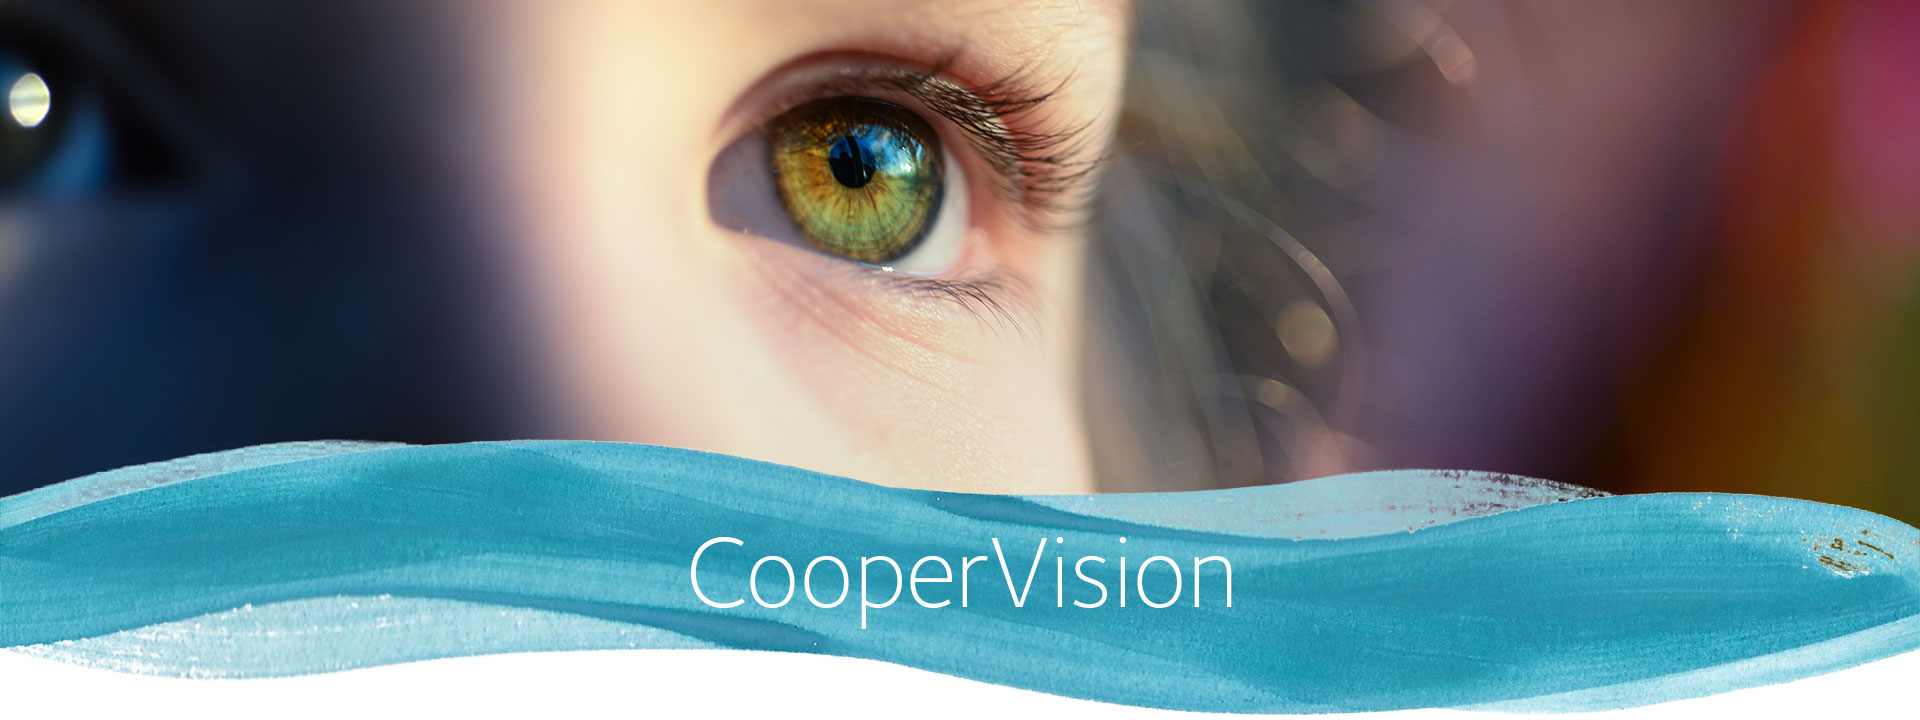 Eye Coopervision